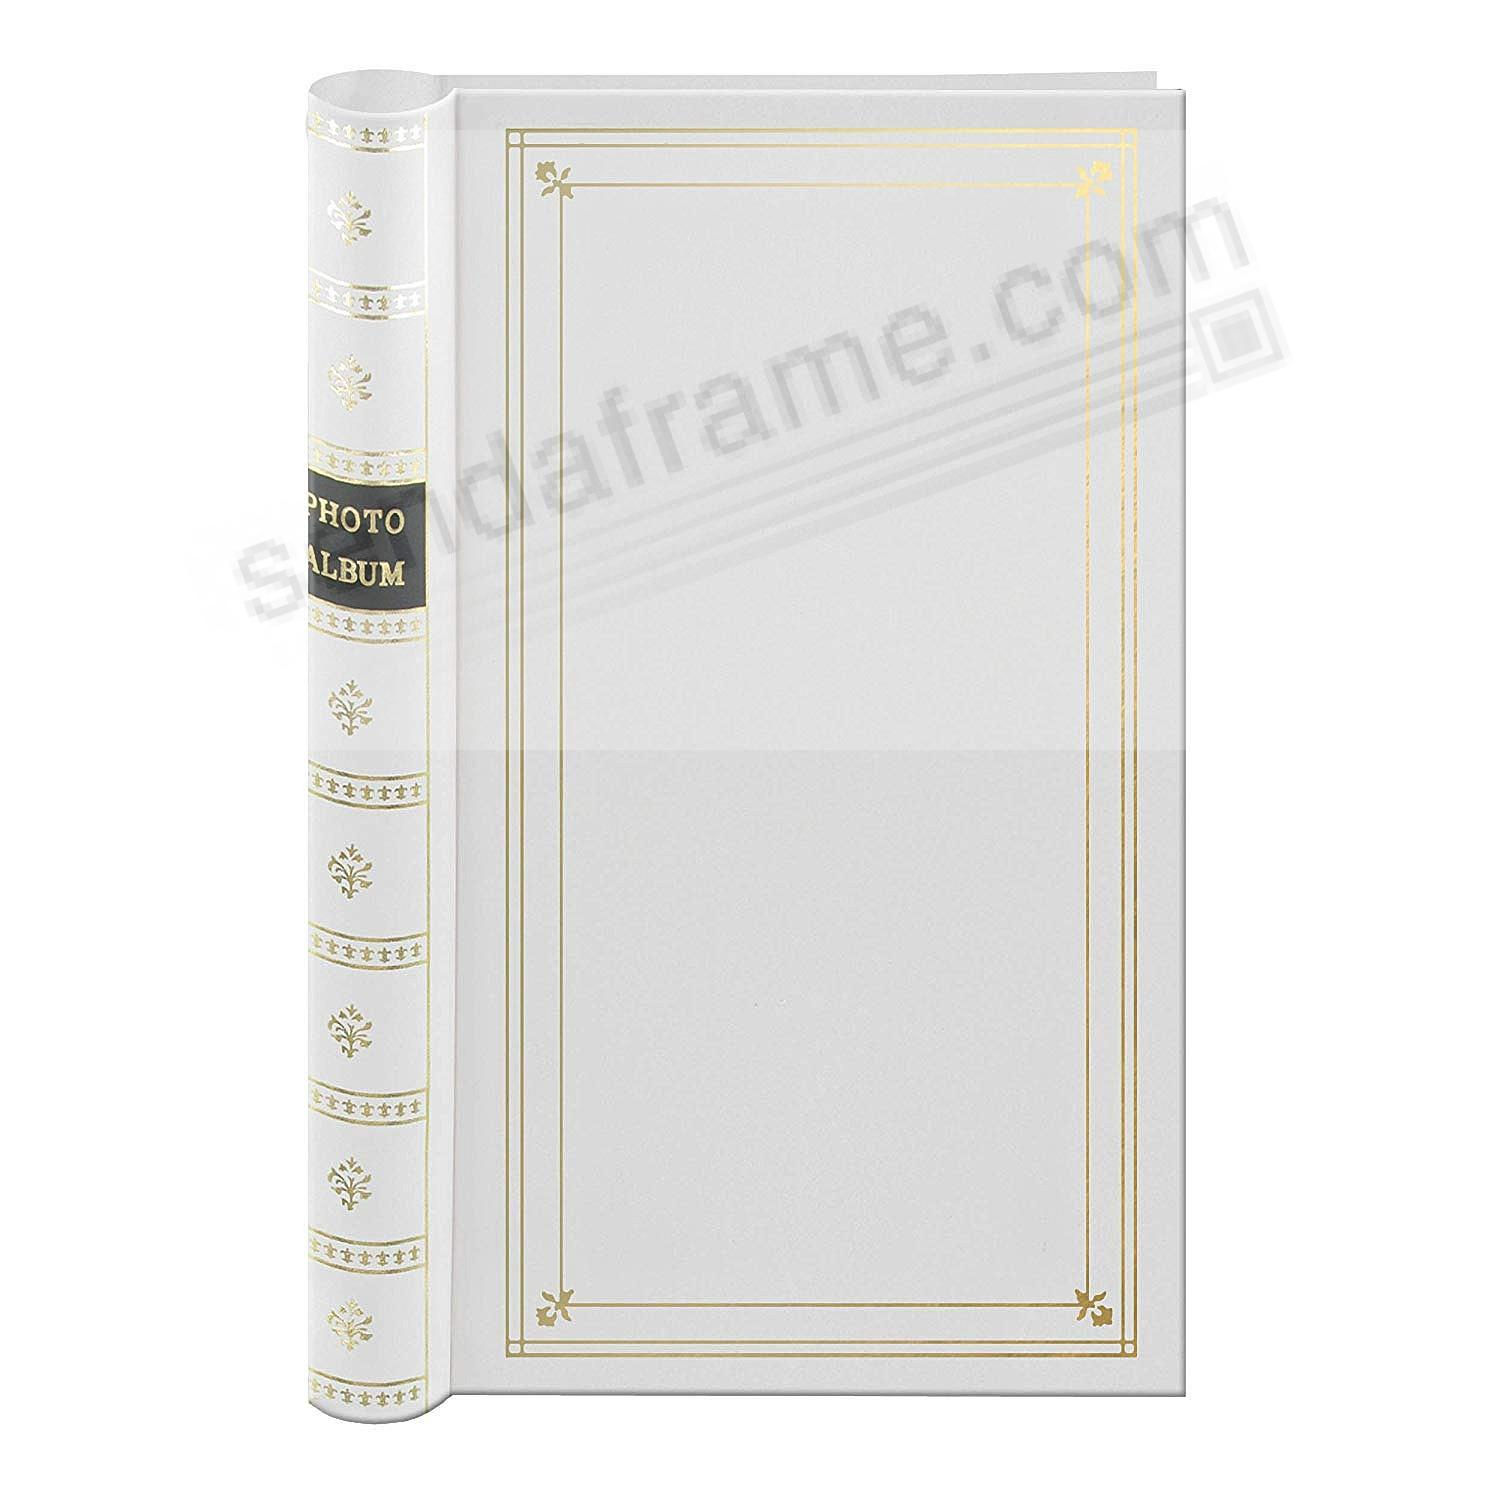 BI-DIRECTIONAL White slide-in pocket albums with Memo